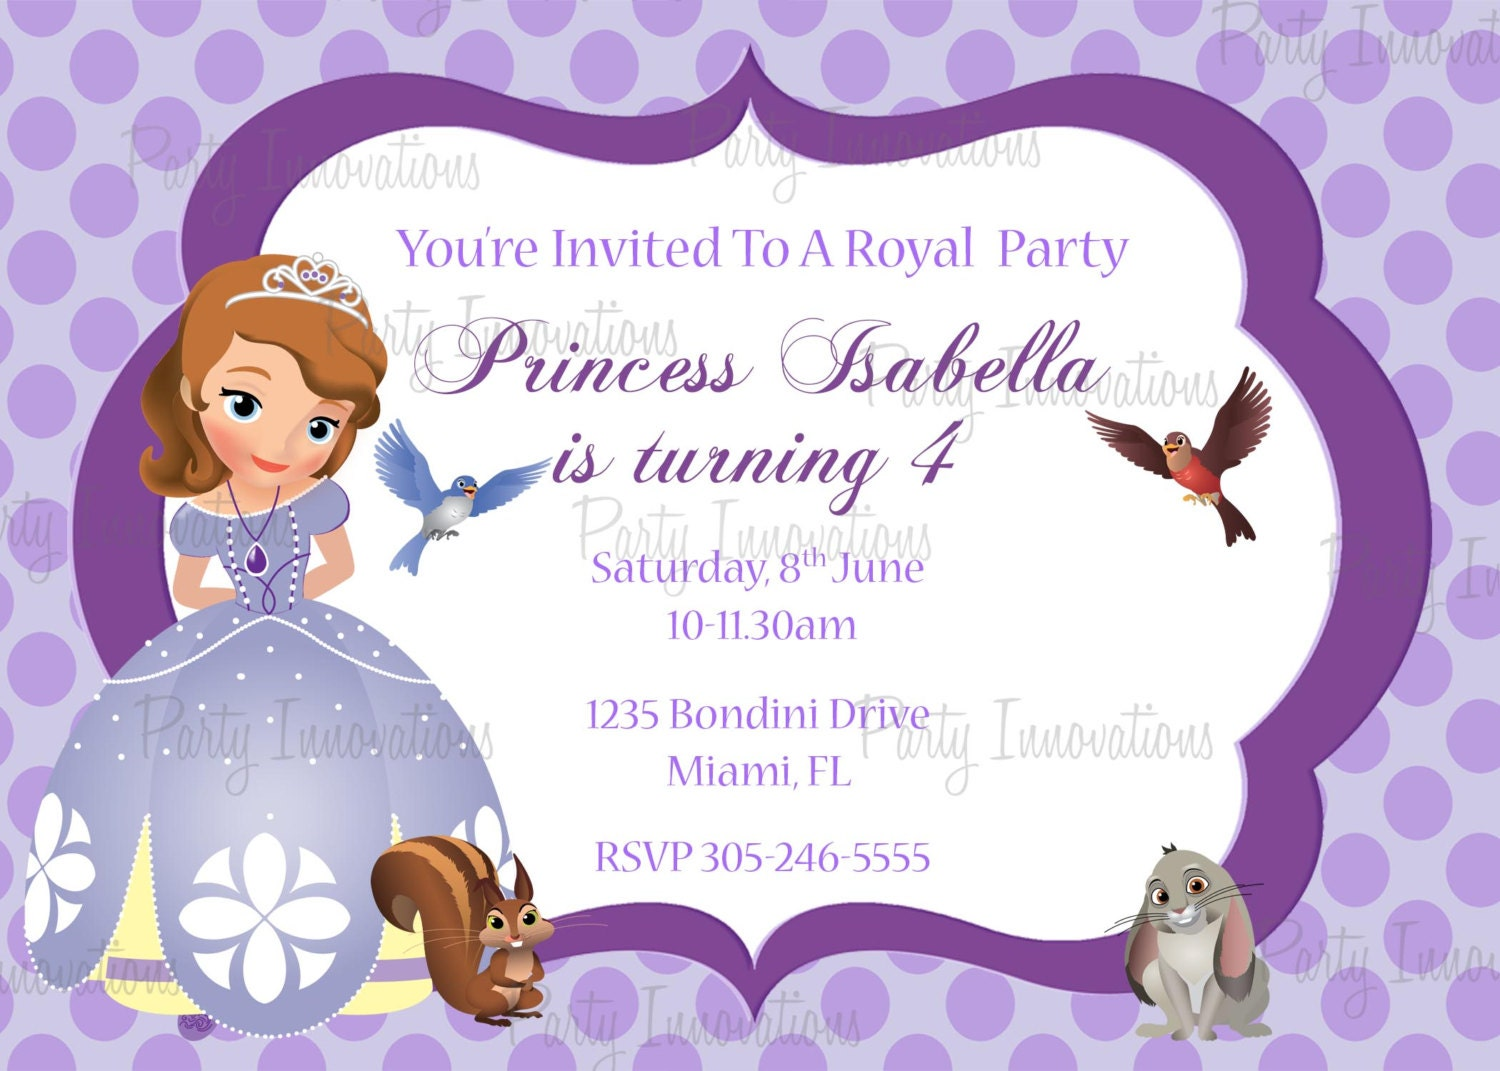 sofia the first birthday printables nivucolorhd sofia the first birthday invitation templates